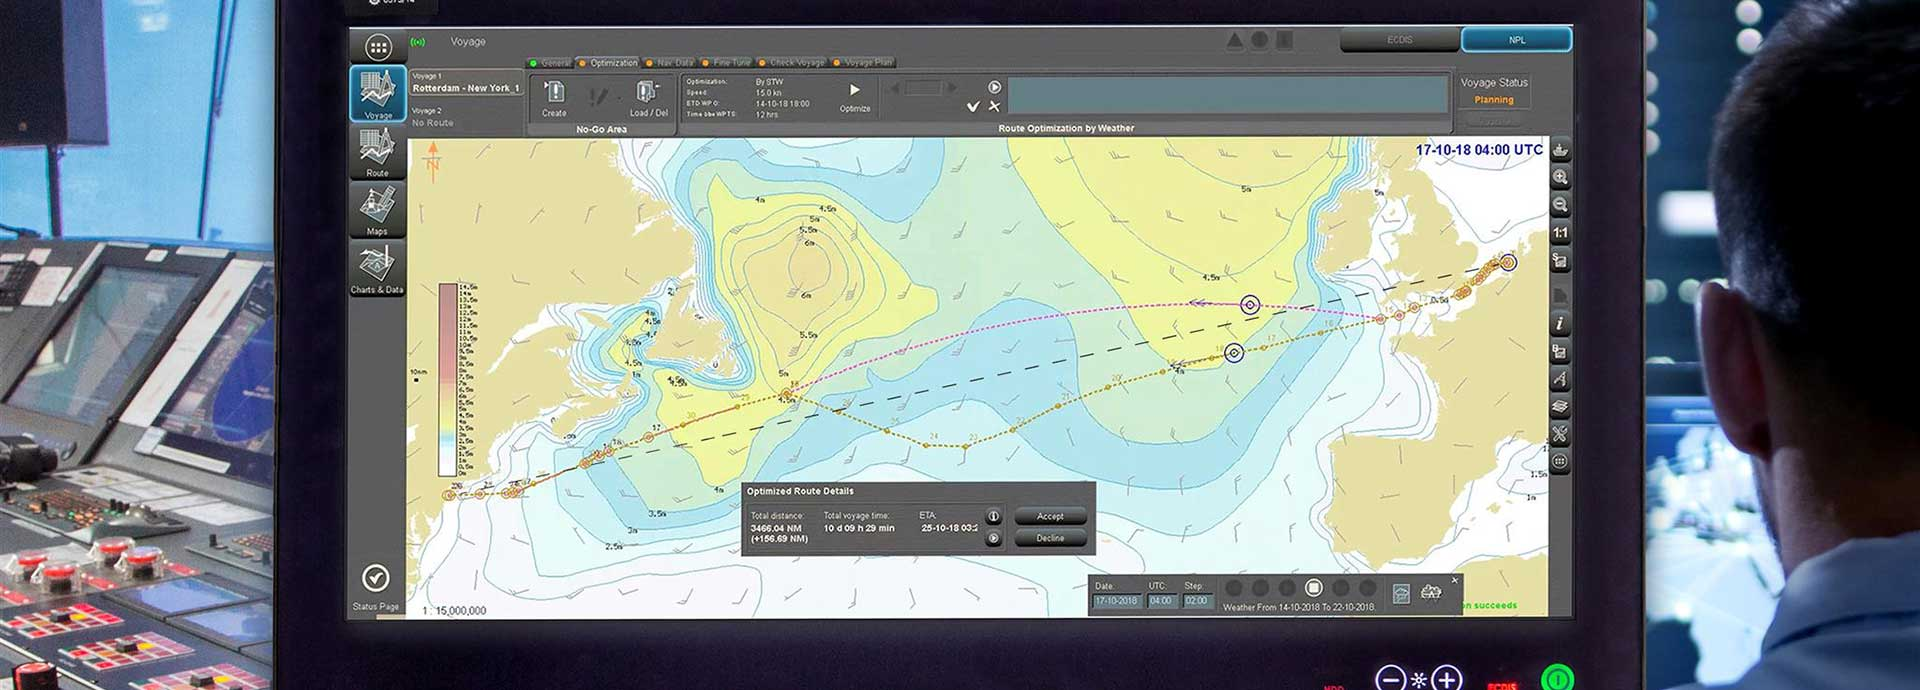 Getting smart with navigation